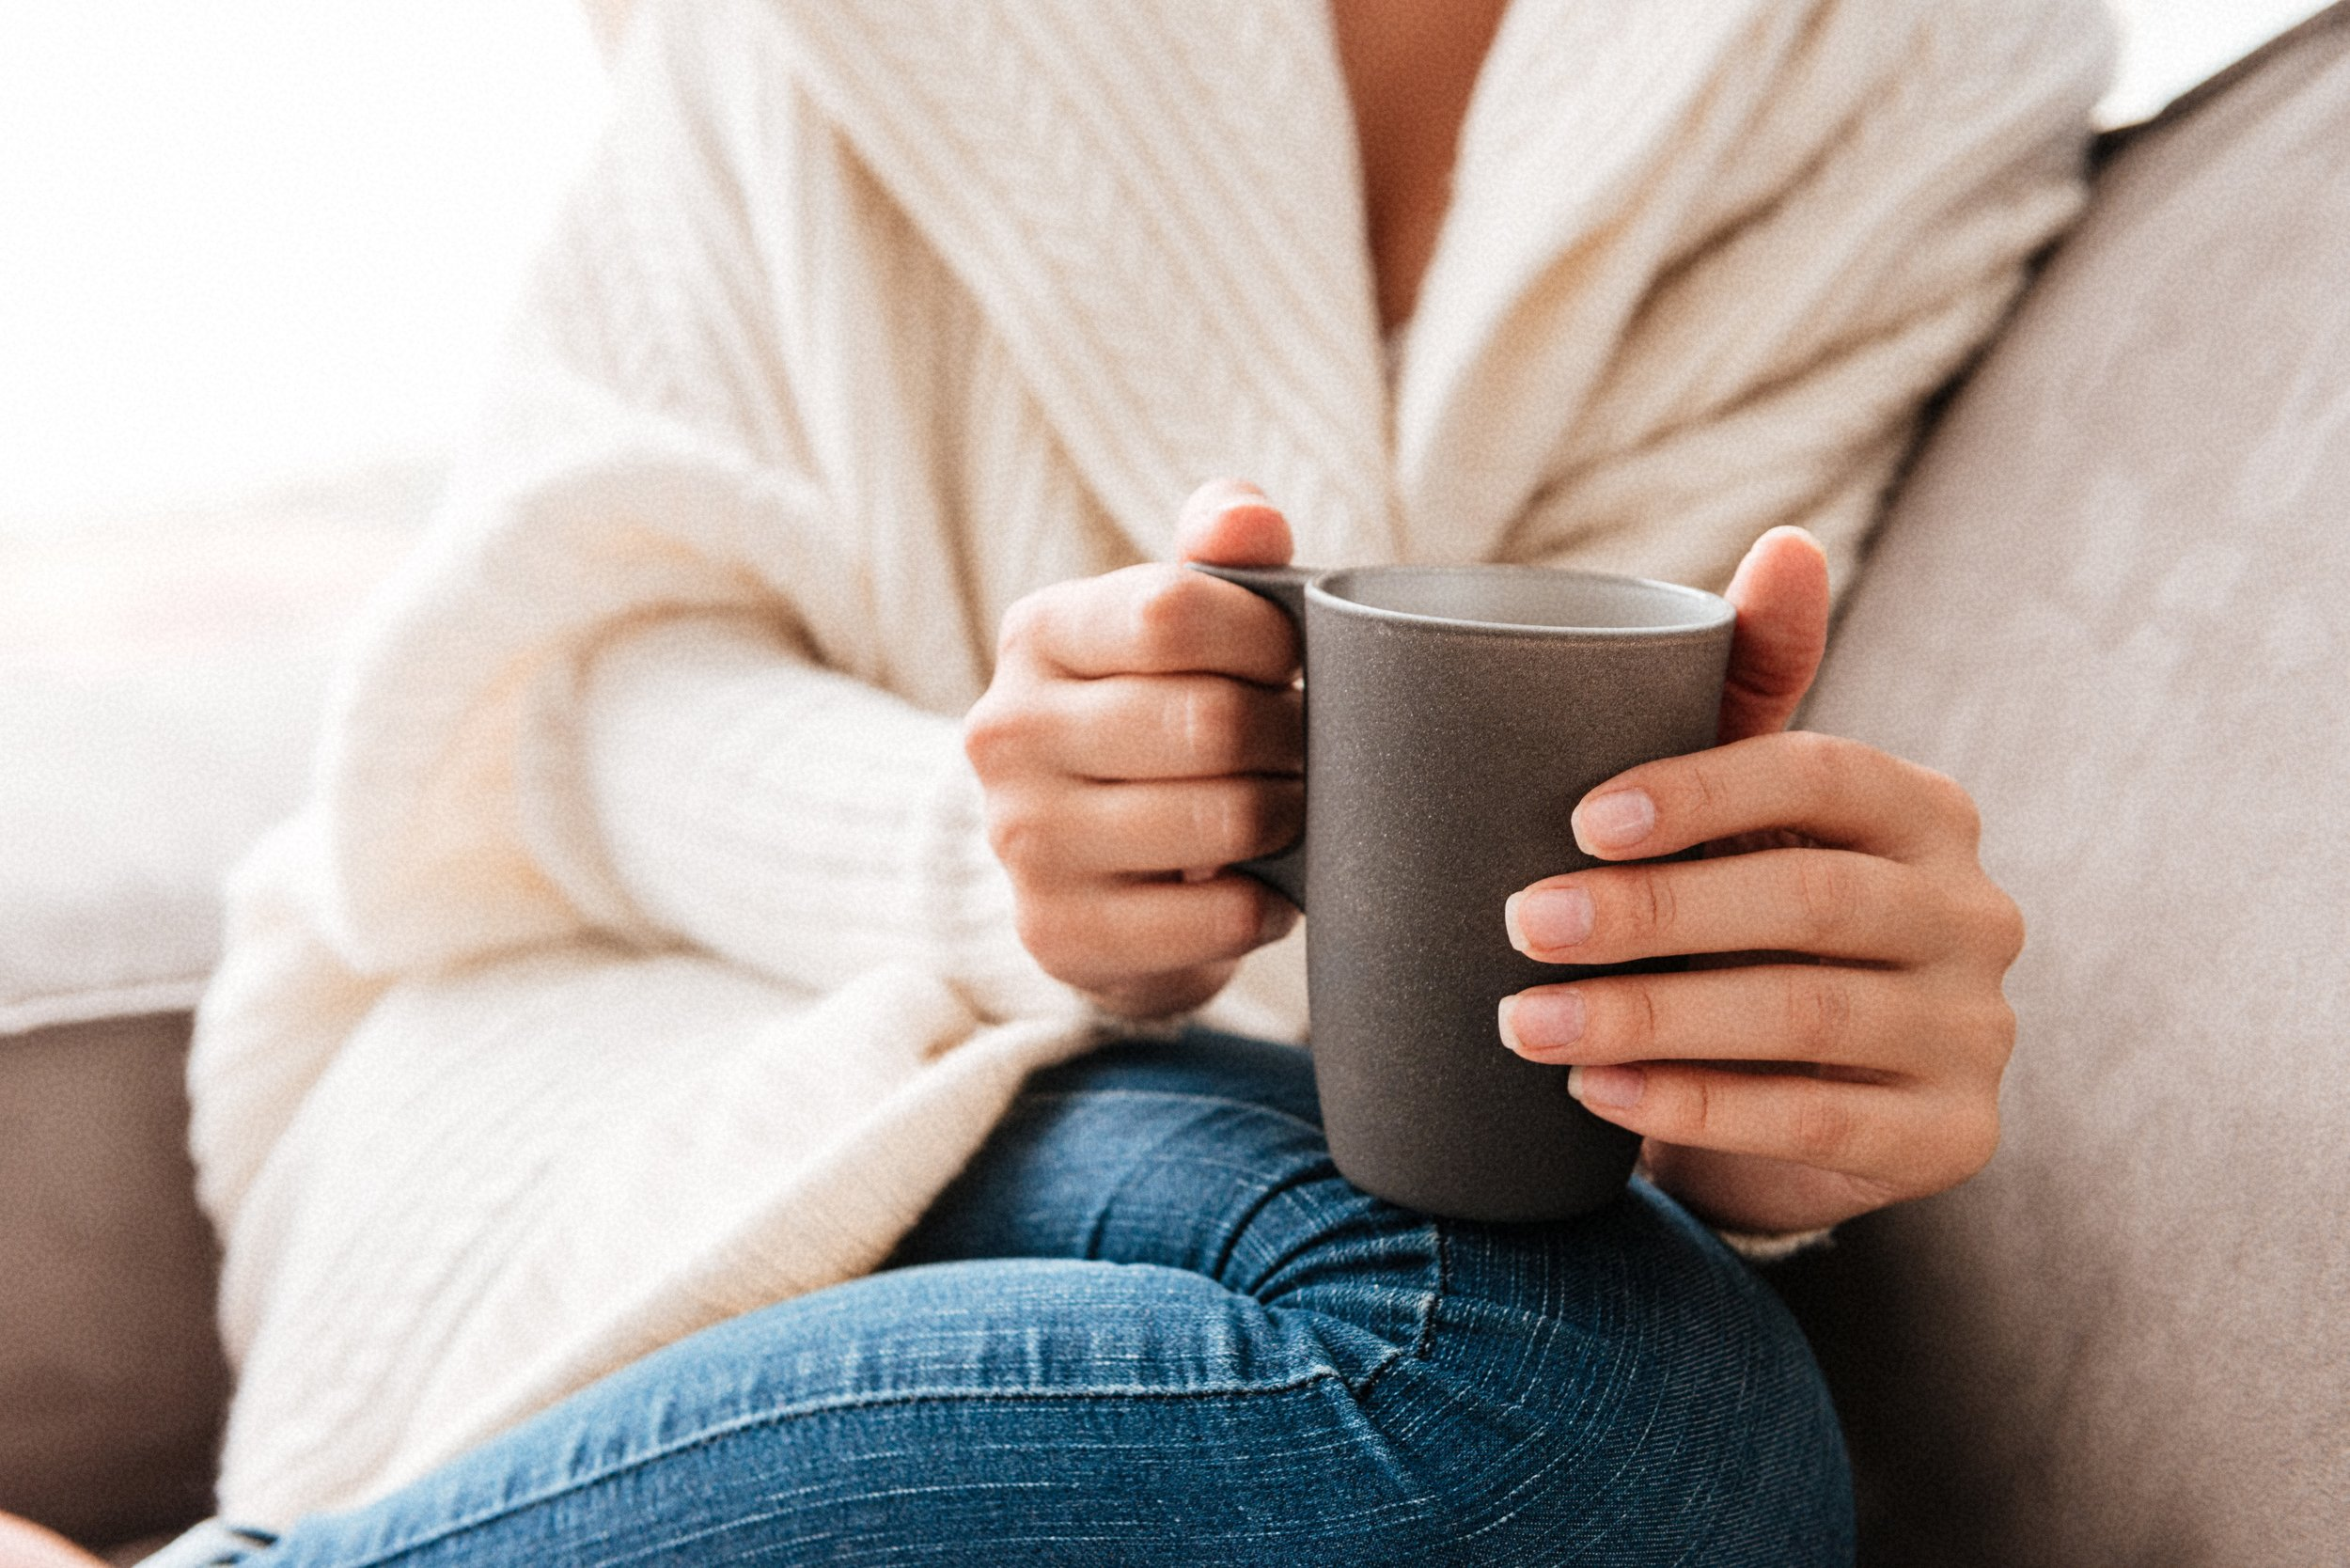 Canva - Woman Sitting and Holding Cup of Coffee on Couch (1).jpg